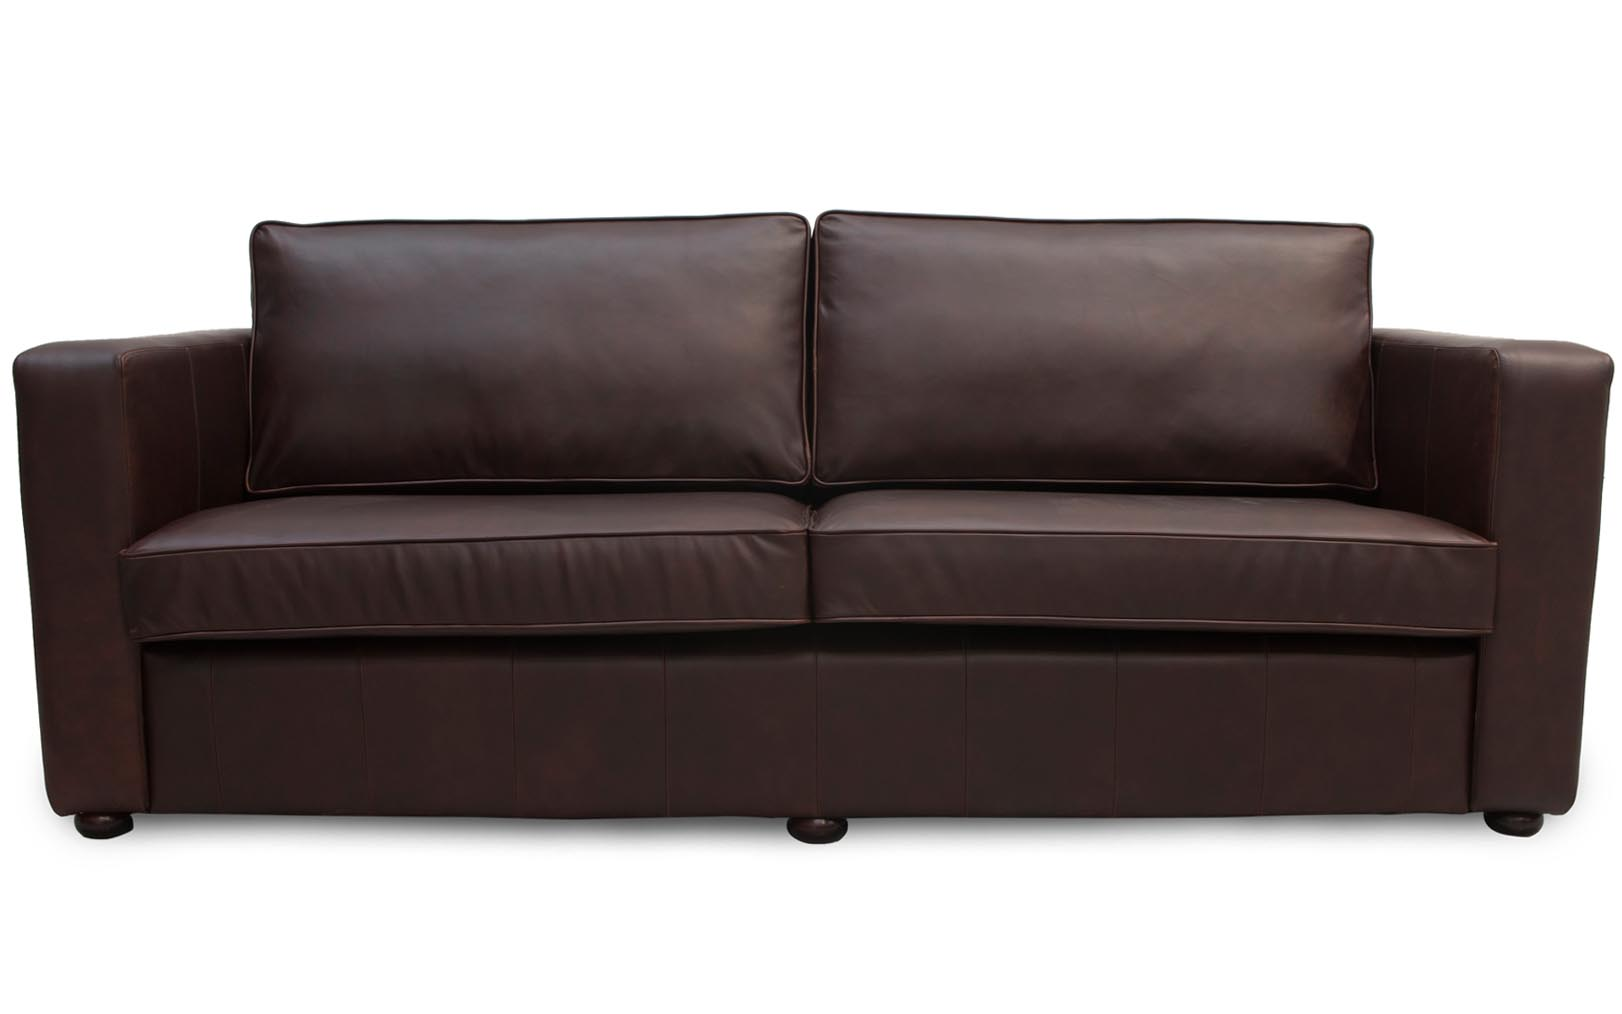 Tipperary Leather Sofa Thin Square Arm Leather Couch